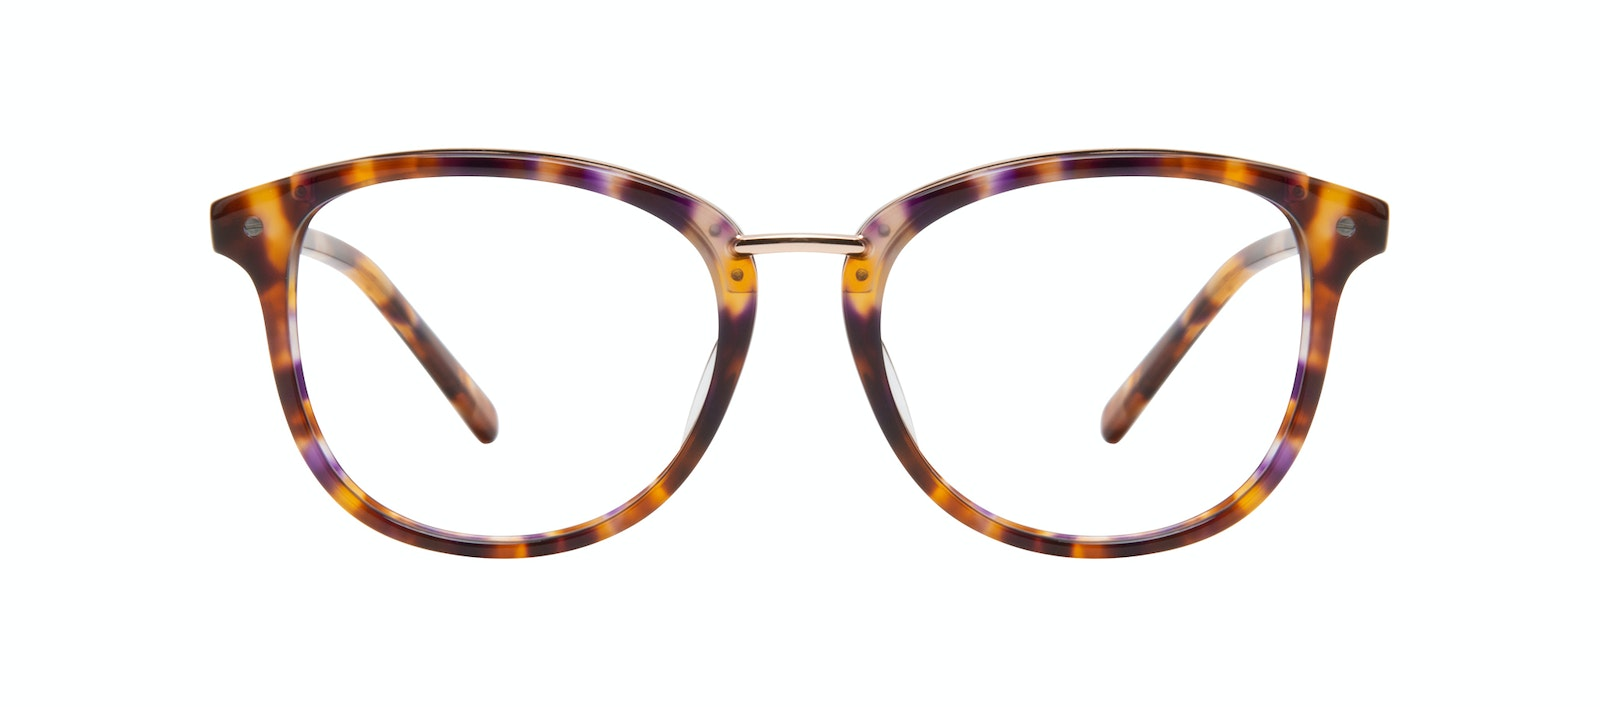 Affordable Fashion Glasses Round Eyeglasses Women Bella Petite Dark Tortoise Front